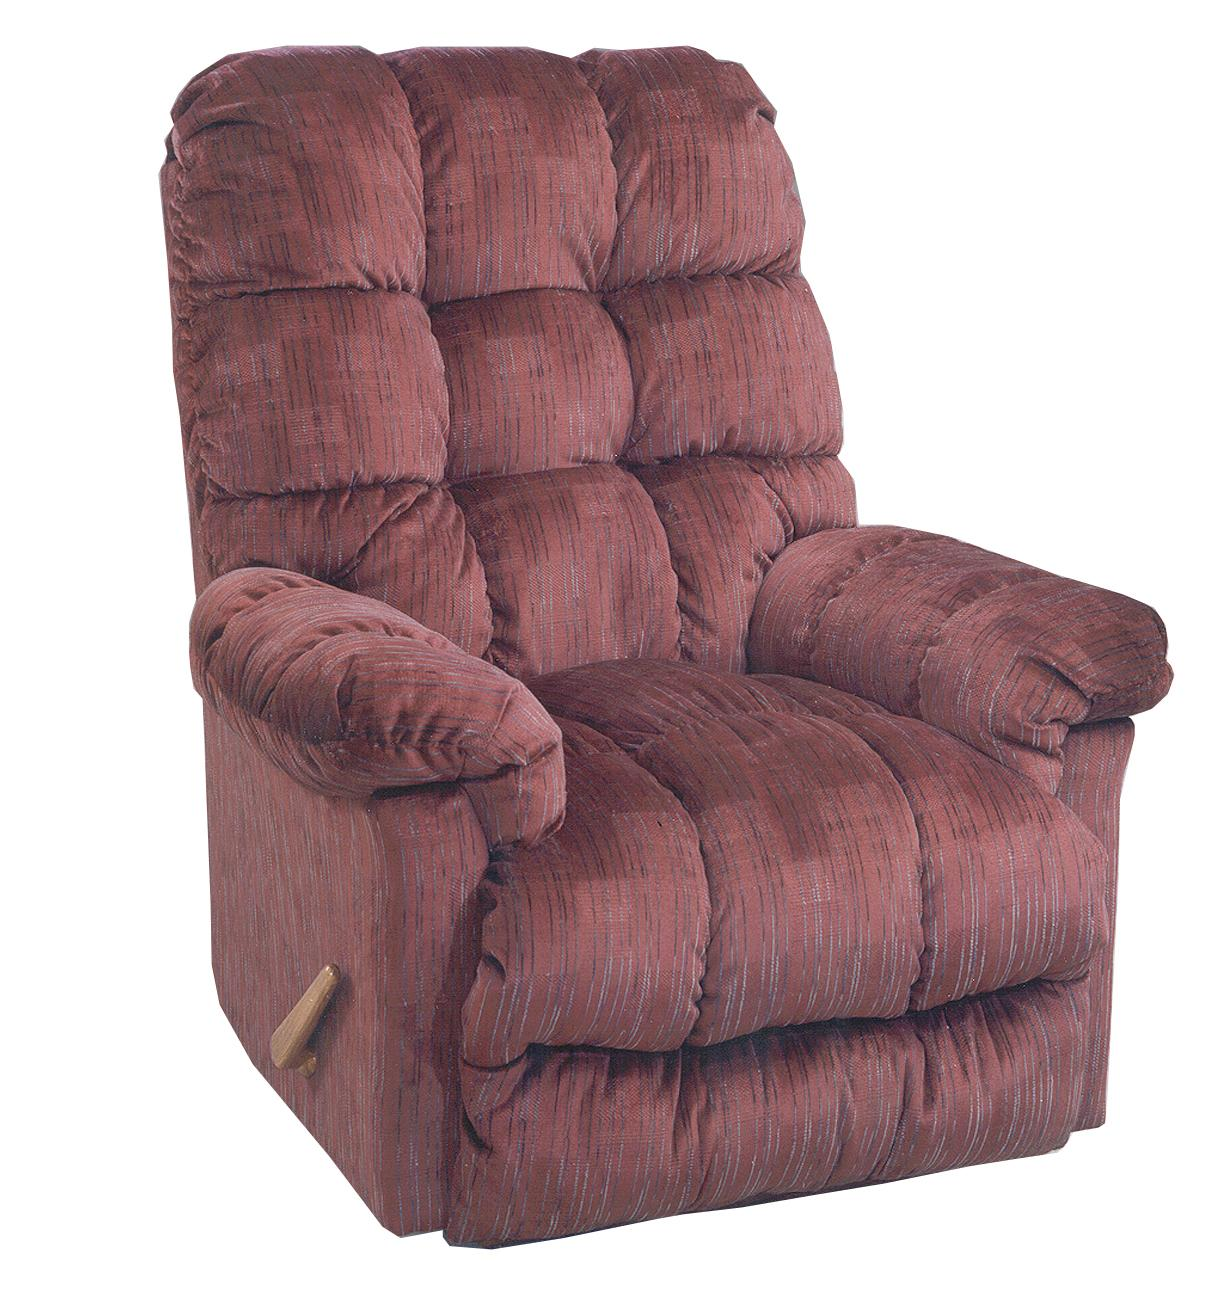 Best Home Furnishings Recliners - Medium Brosmer Swivel Glider Recliner - Item Number: 9MW85-1